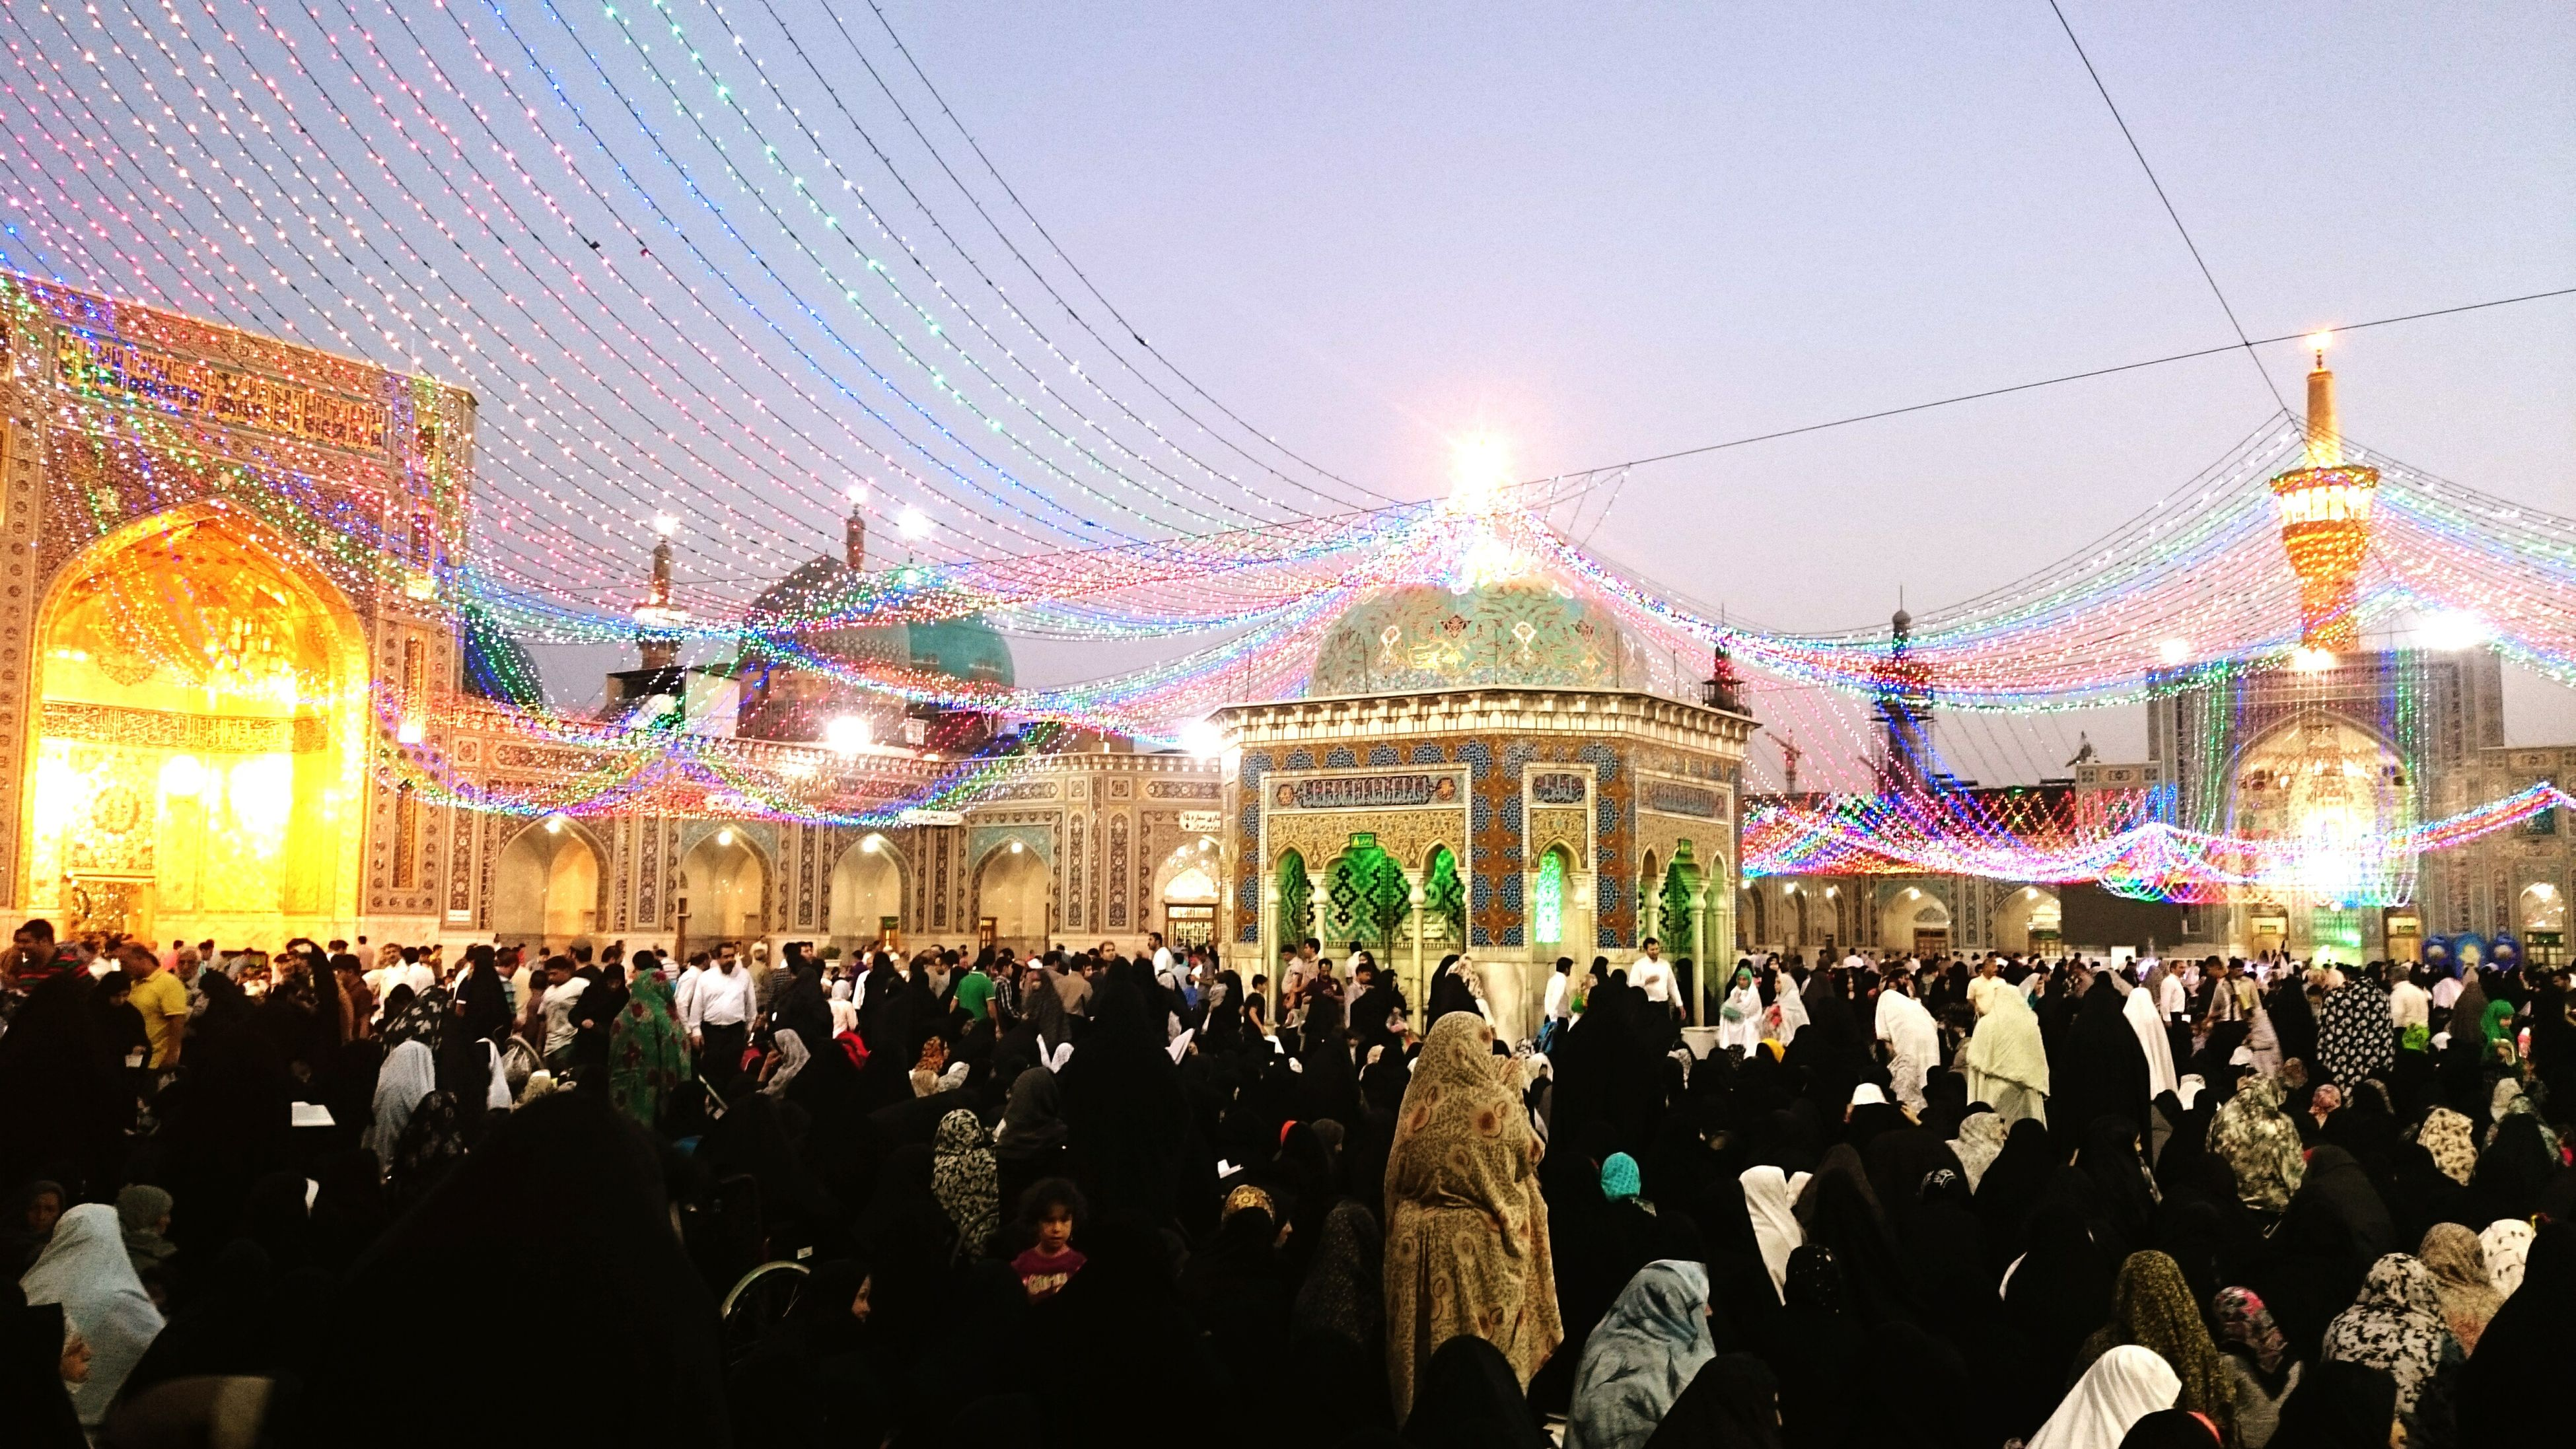 large group of people, crowd, illuminated, architecture, person, built structure, men, lifestyles, building exterior, celebration, leisure activity, lighting equipment, night, religion, mixed age range, sky, decoration, travel destinations, spirituality